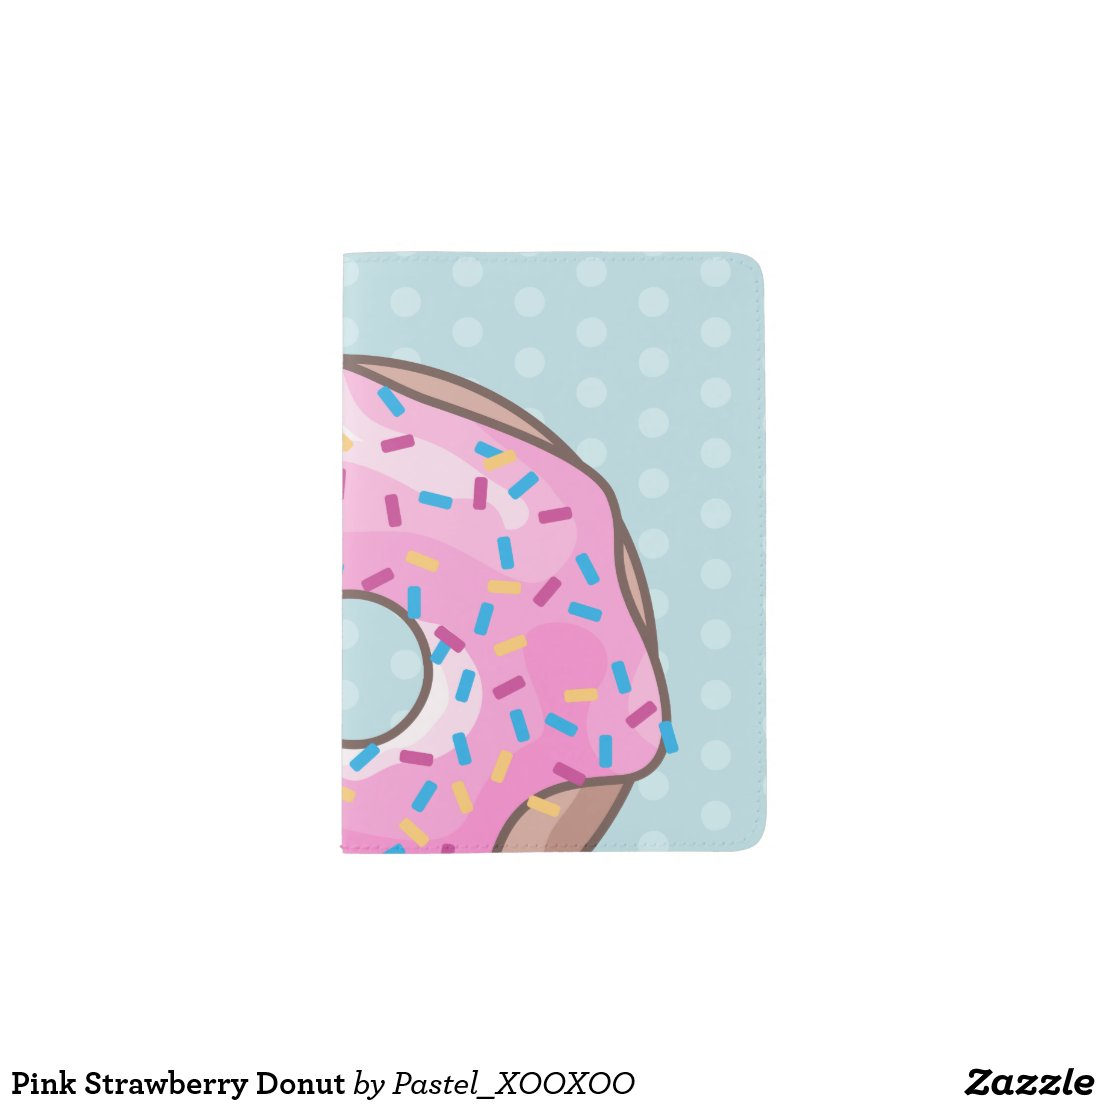 Pink Strawberry Donut